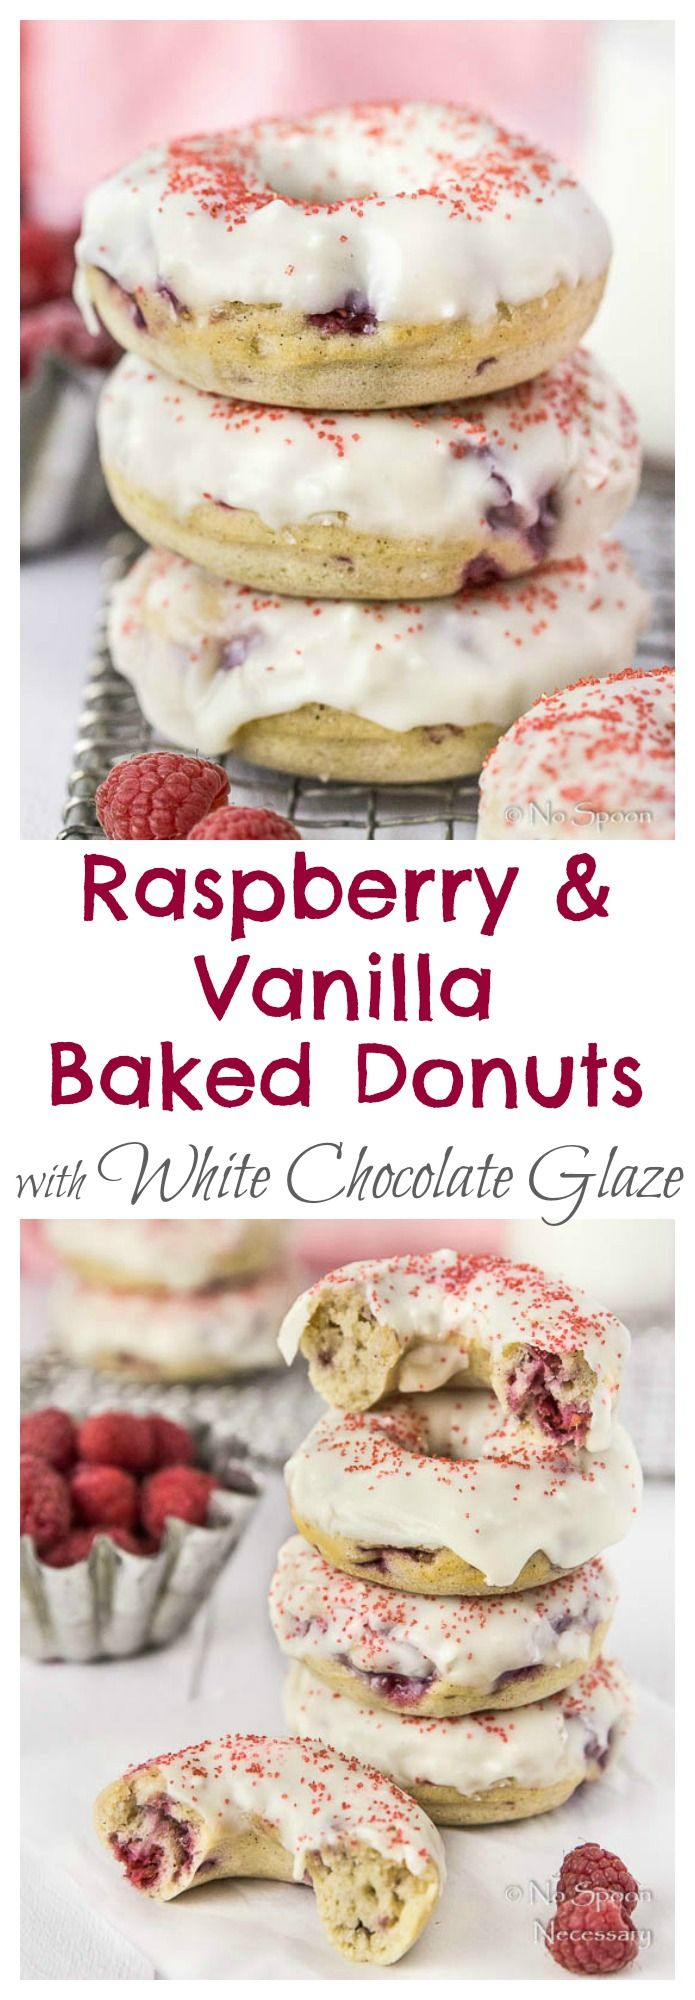 Raspberry & Vanilla Baked Donuts with White Chocolate Glaze